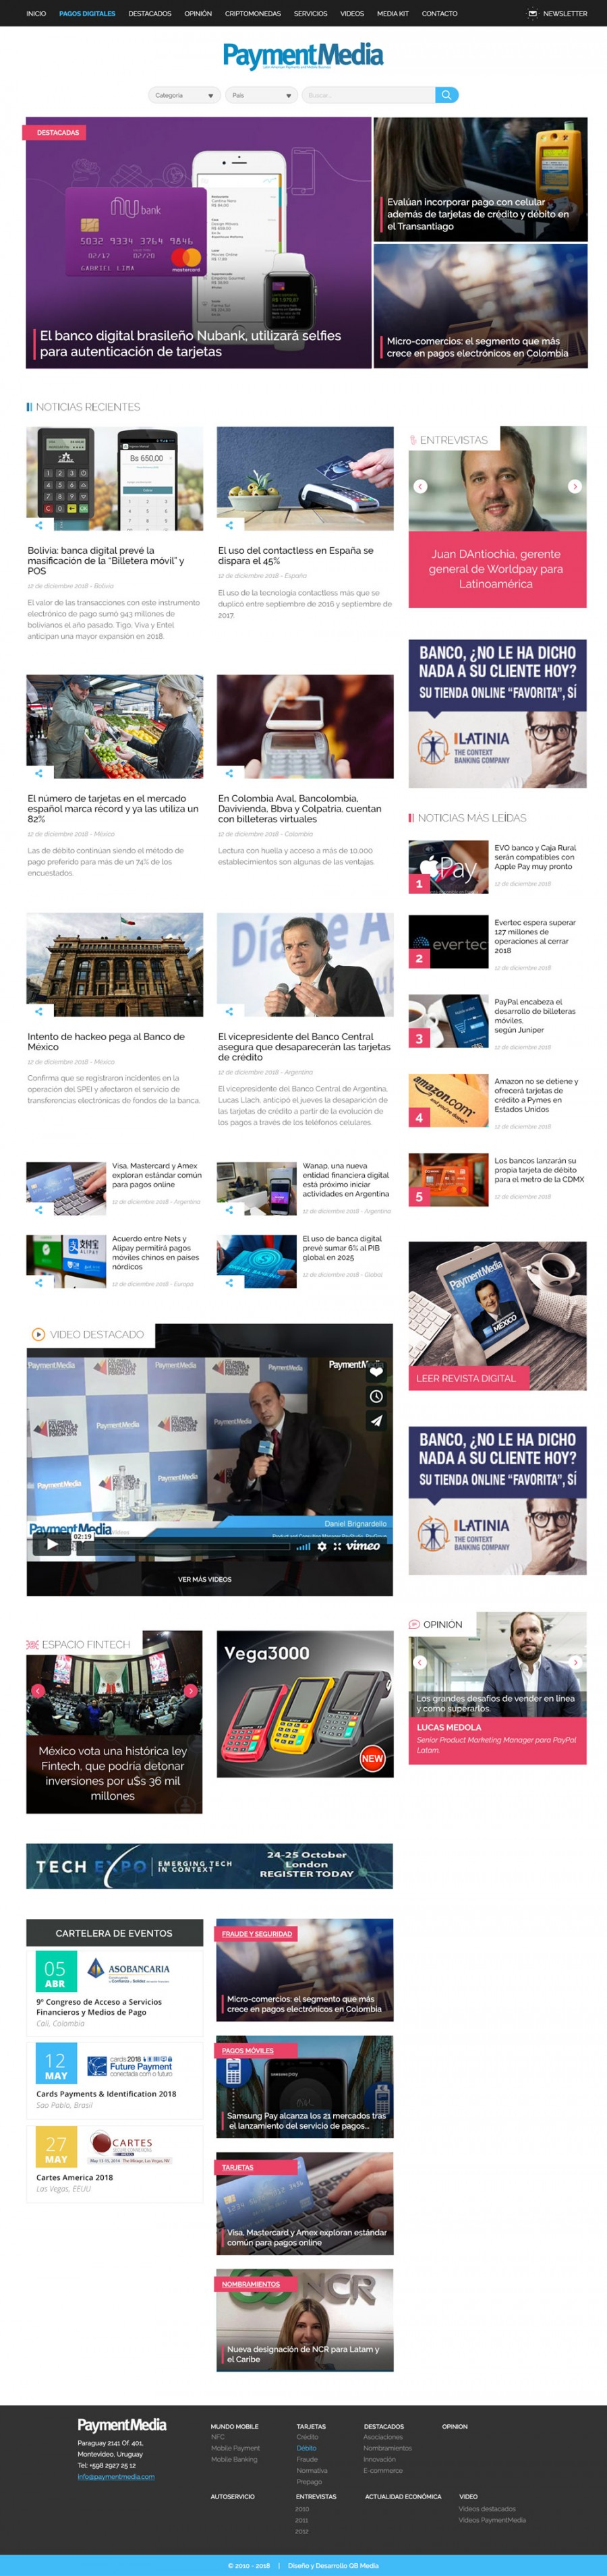 news portal design and development uruguay